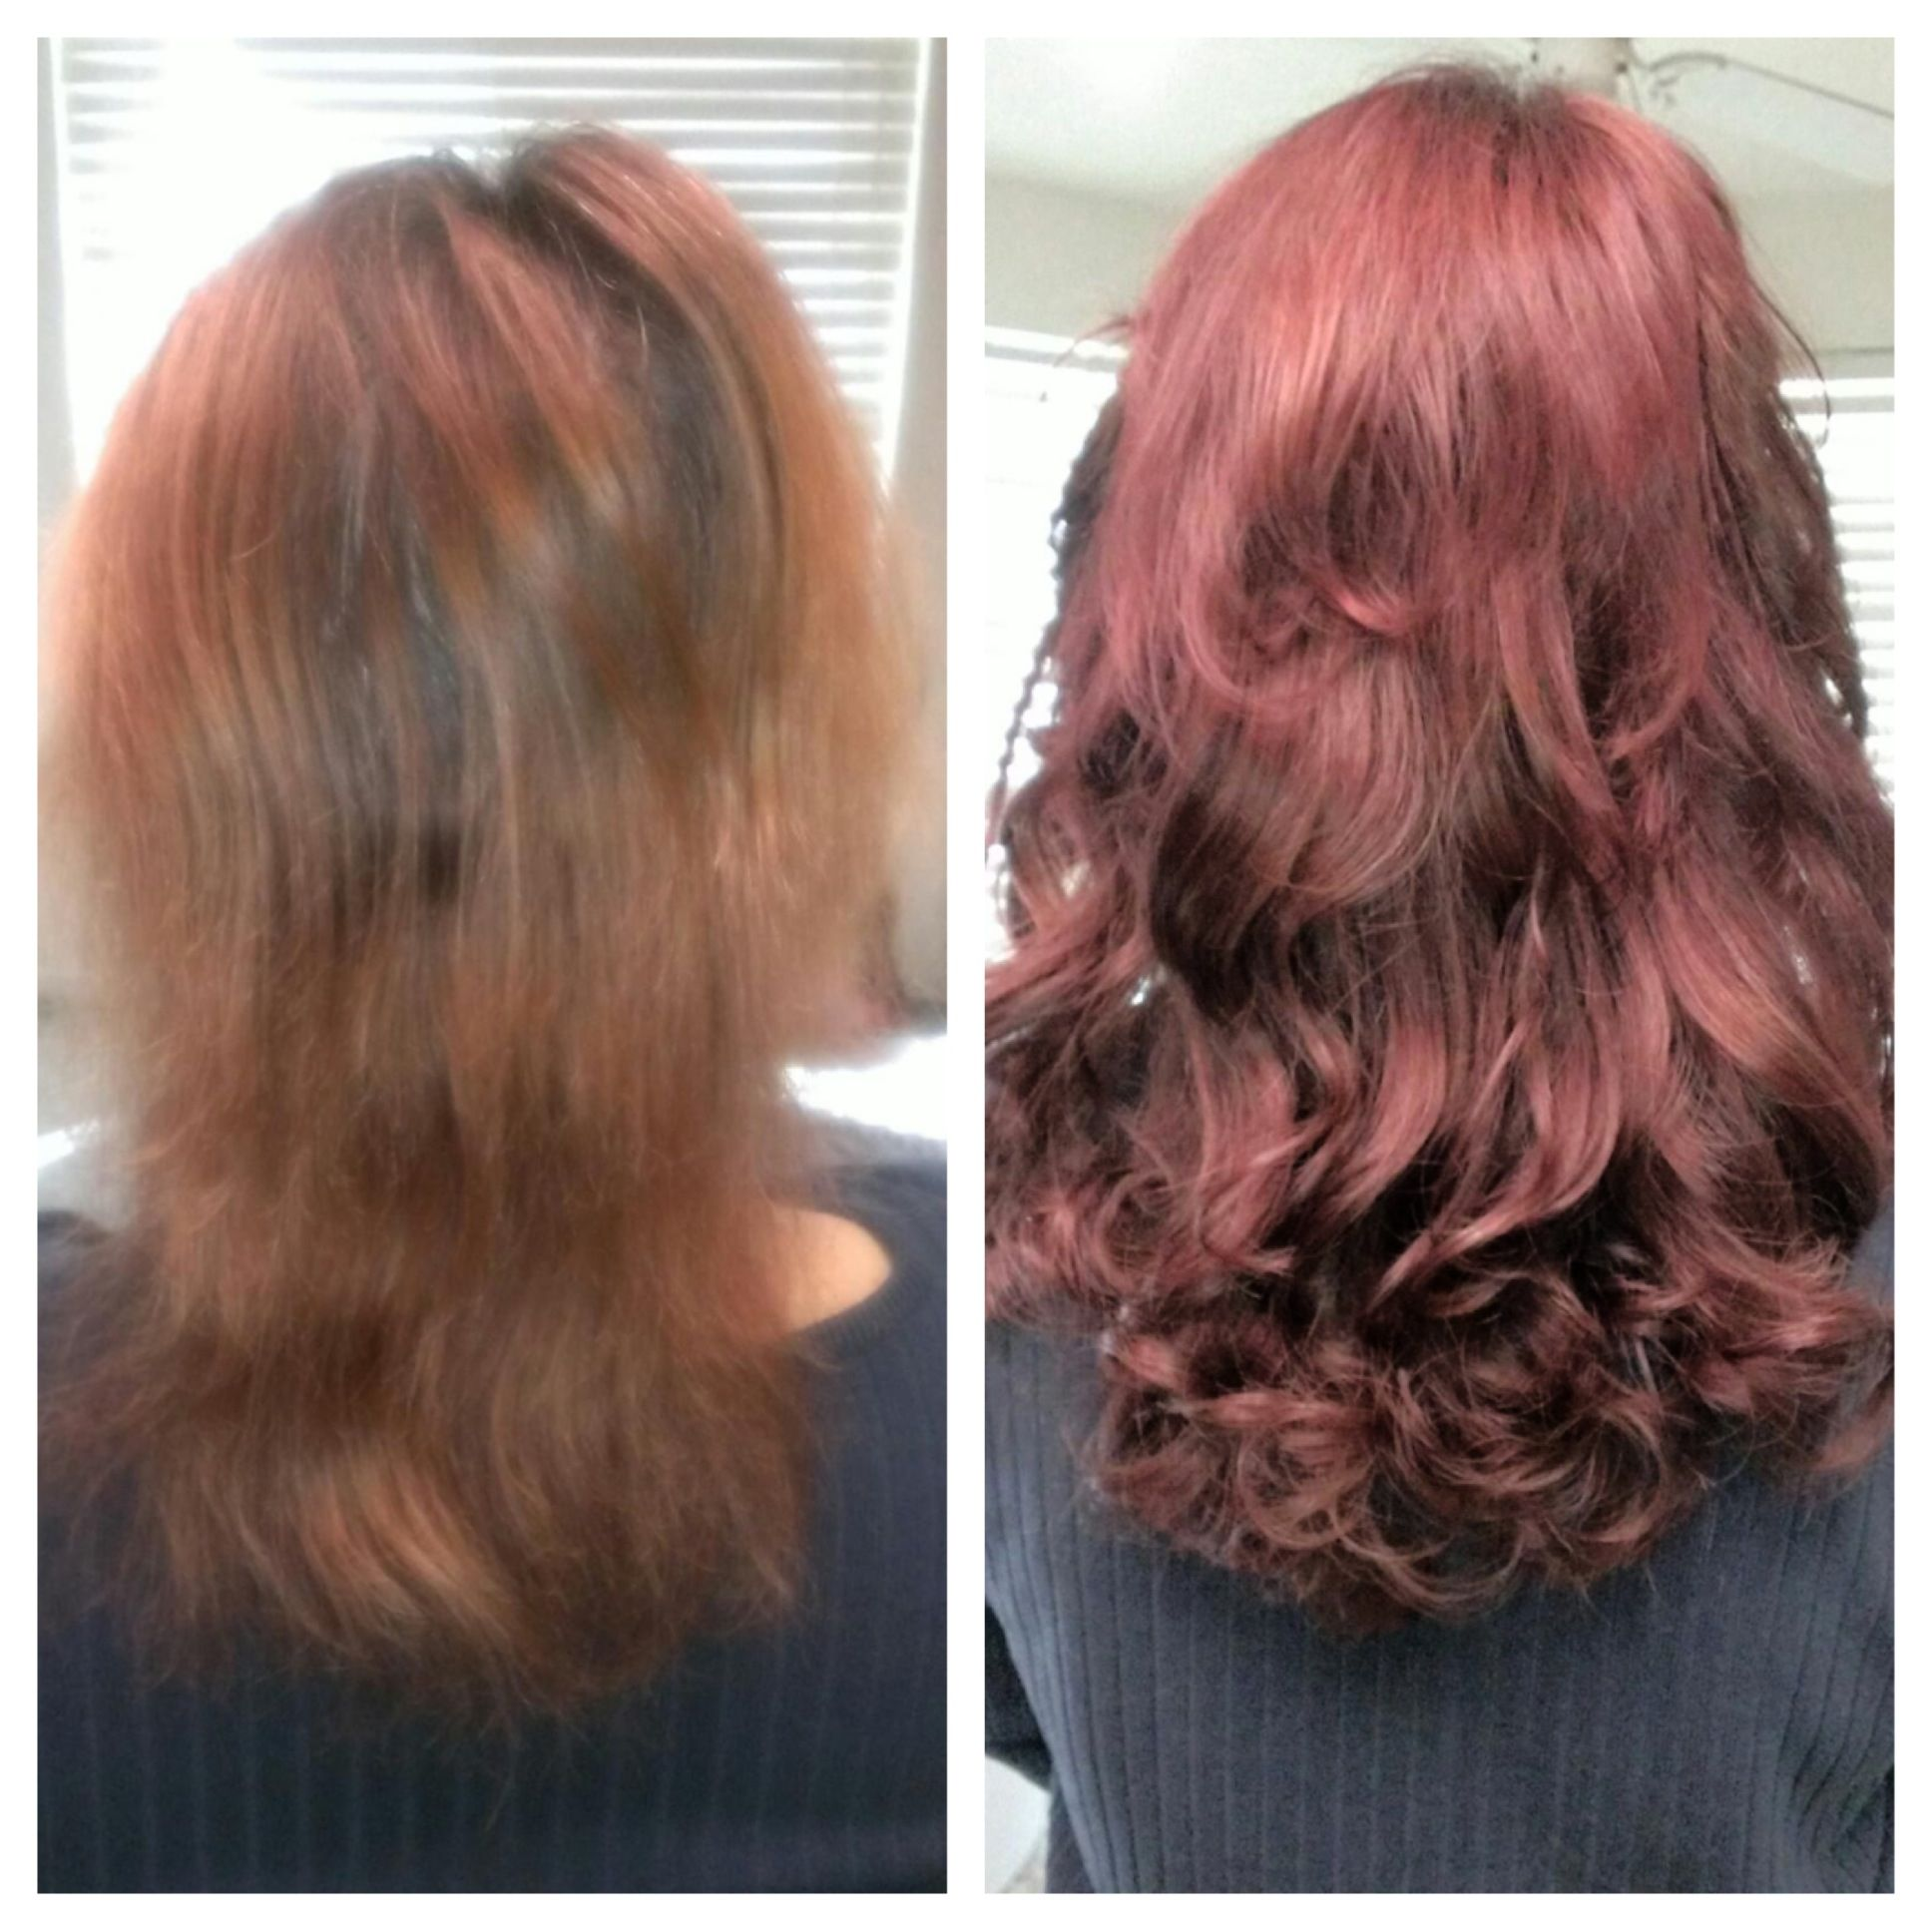 Before After Matrix Socolor And The Help Of Extensions Helped